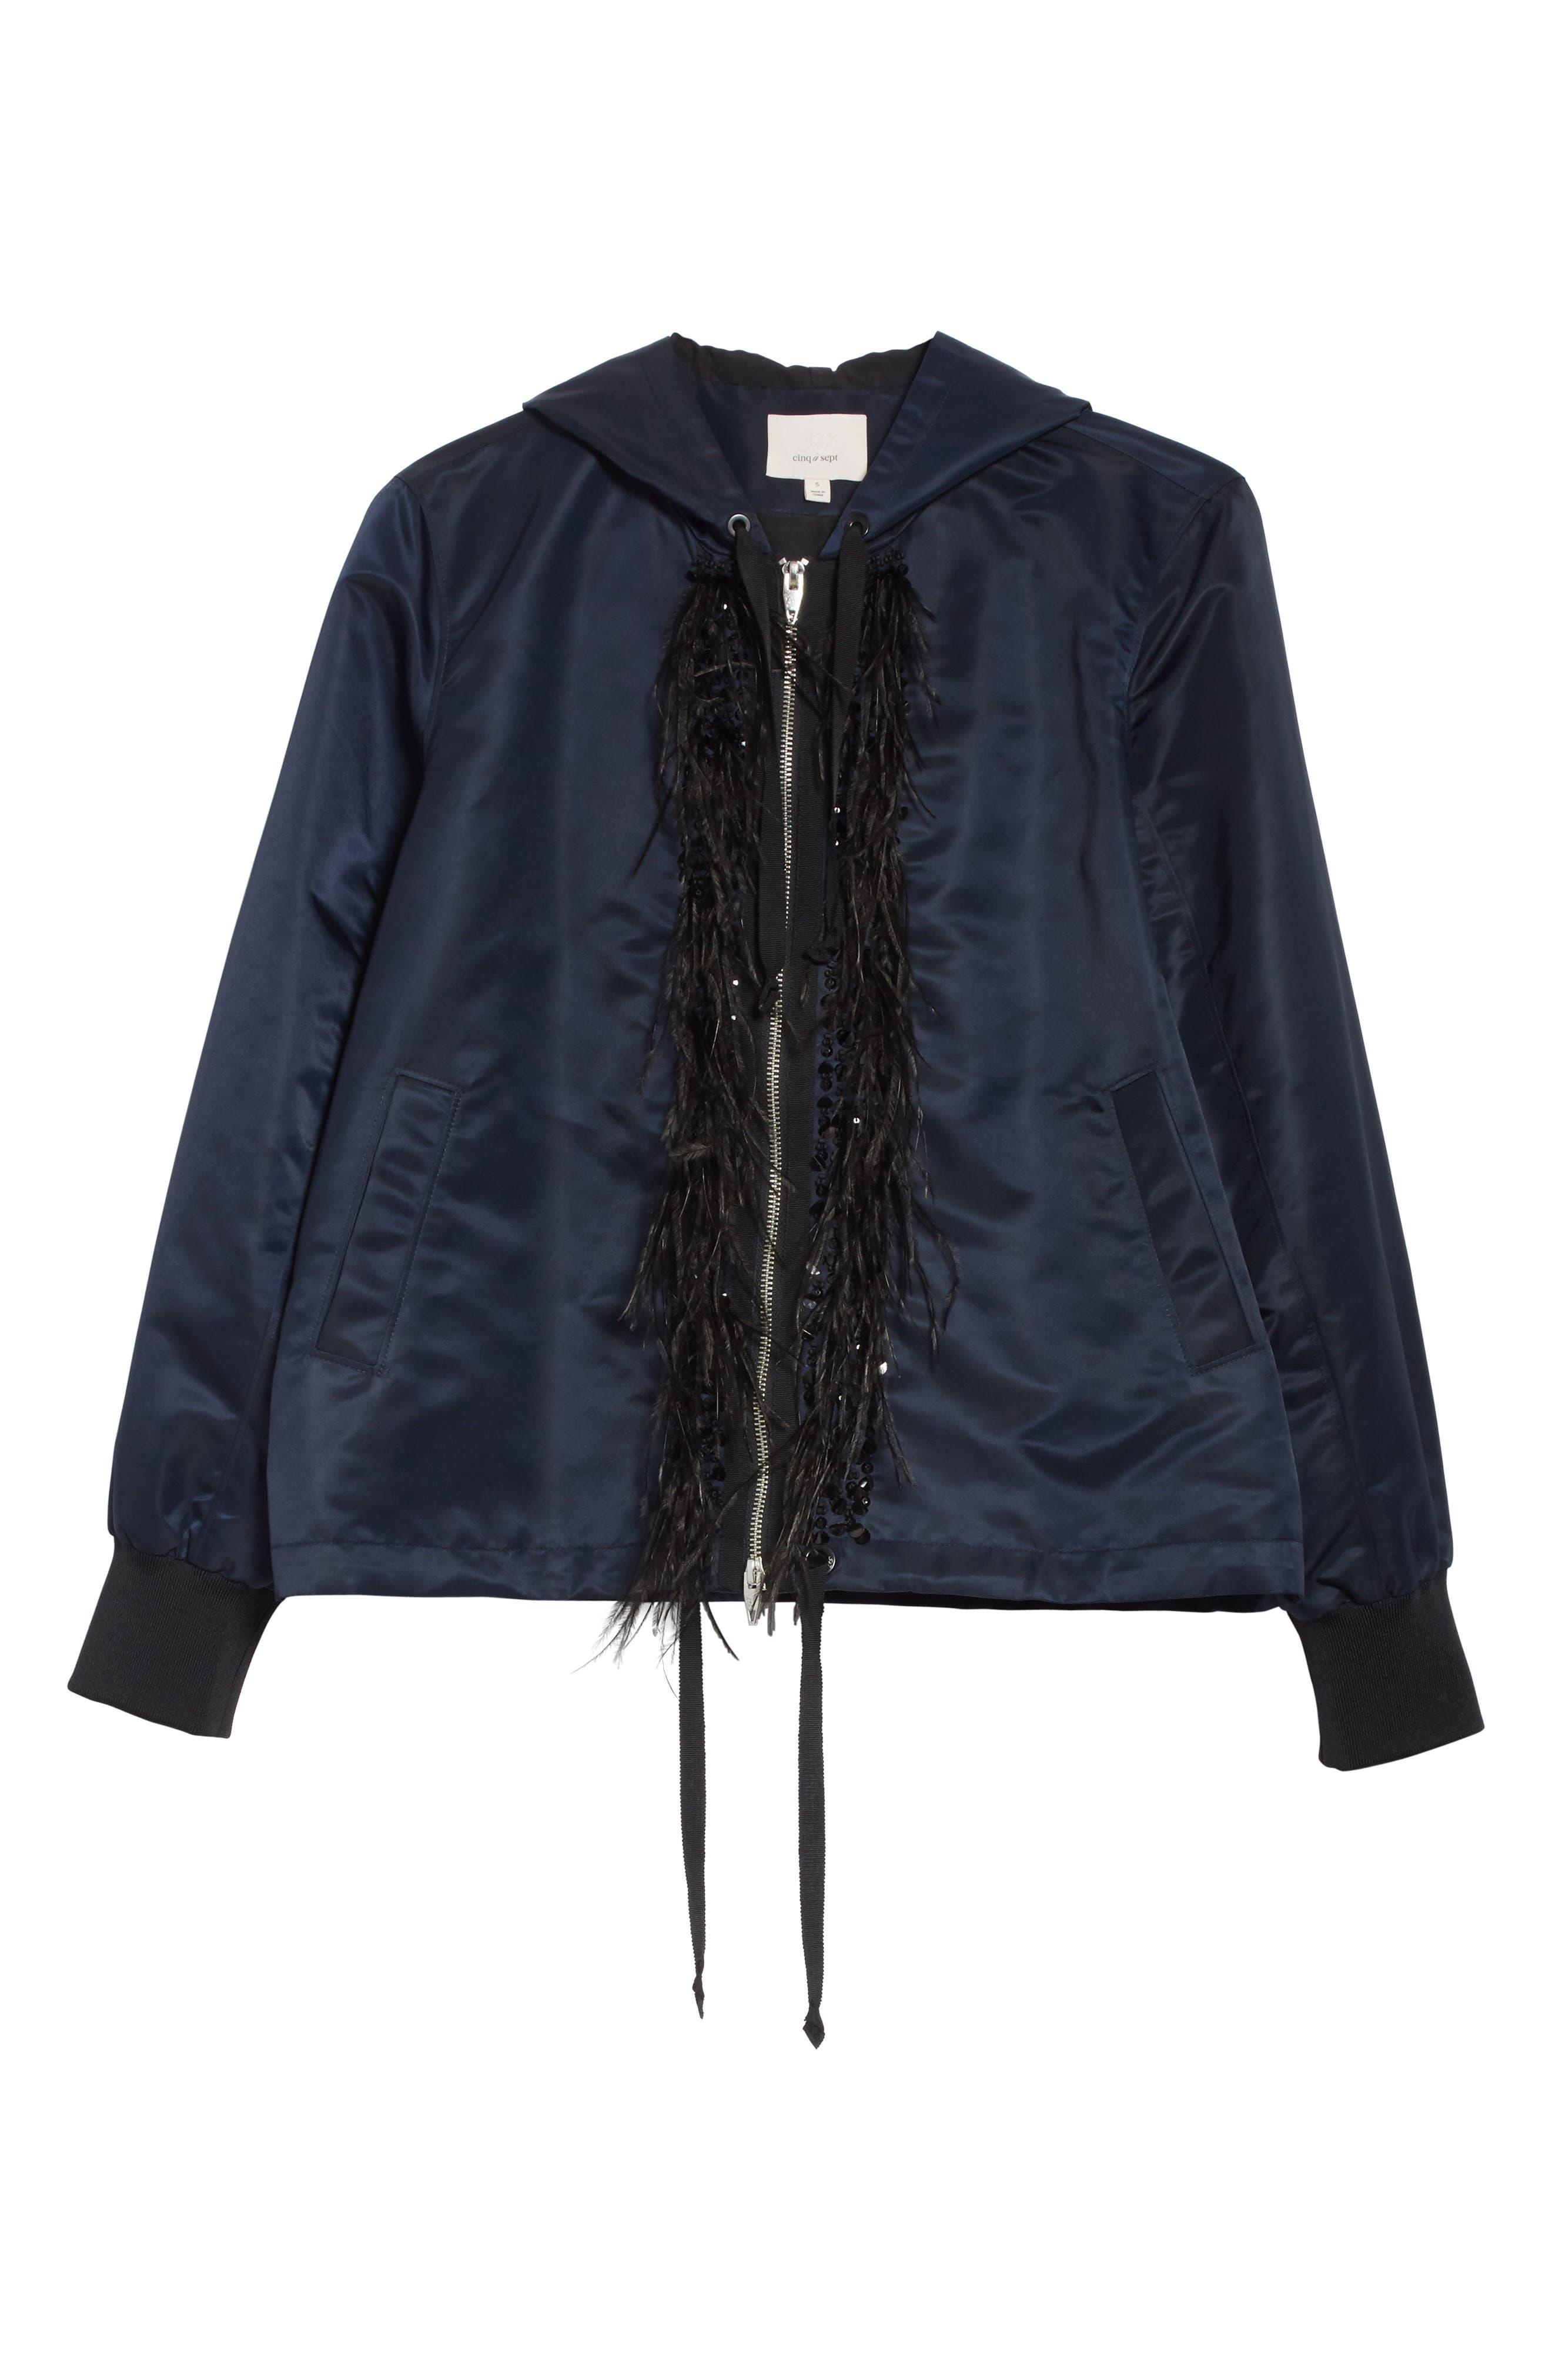 Collette Hooded Feather Trim Jacket,                             Alternate thumbnail 6, color,                             Navy/ Black